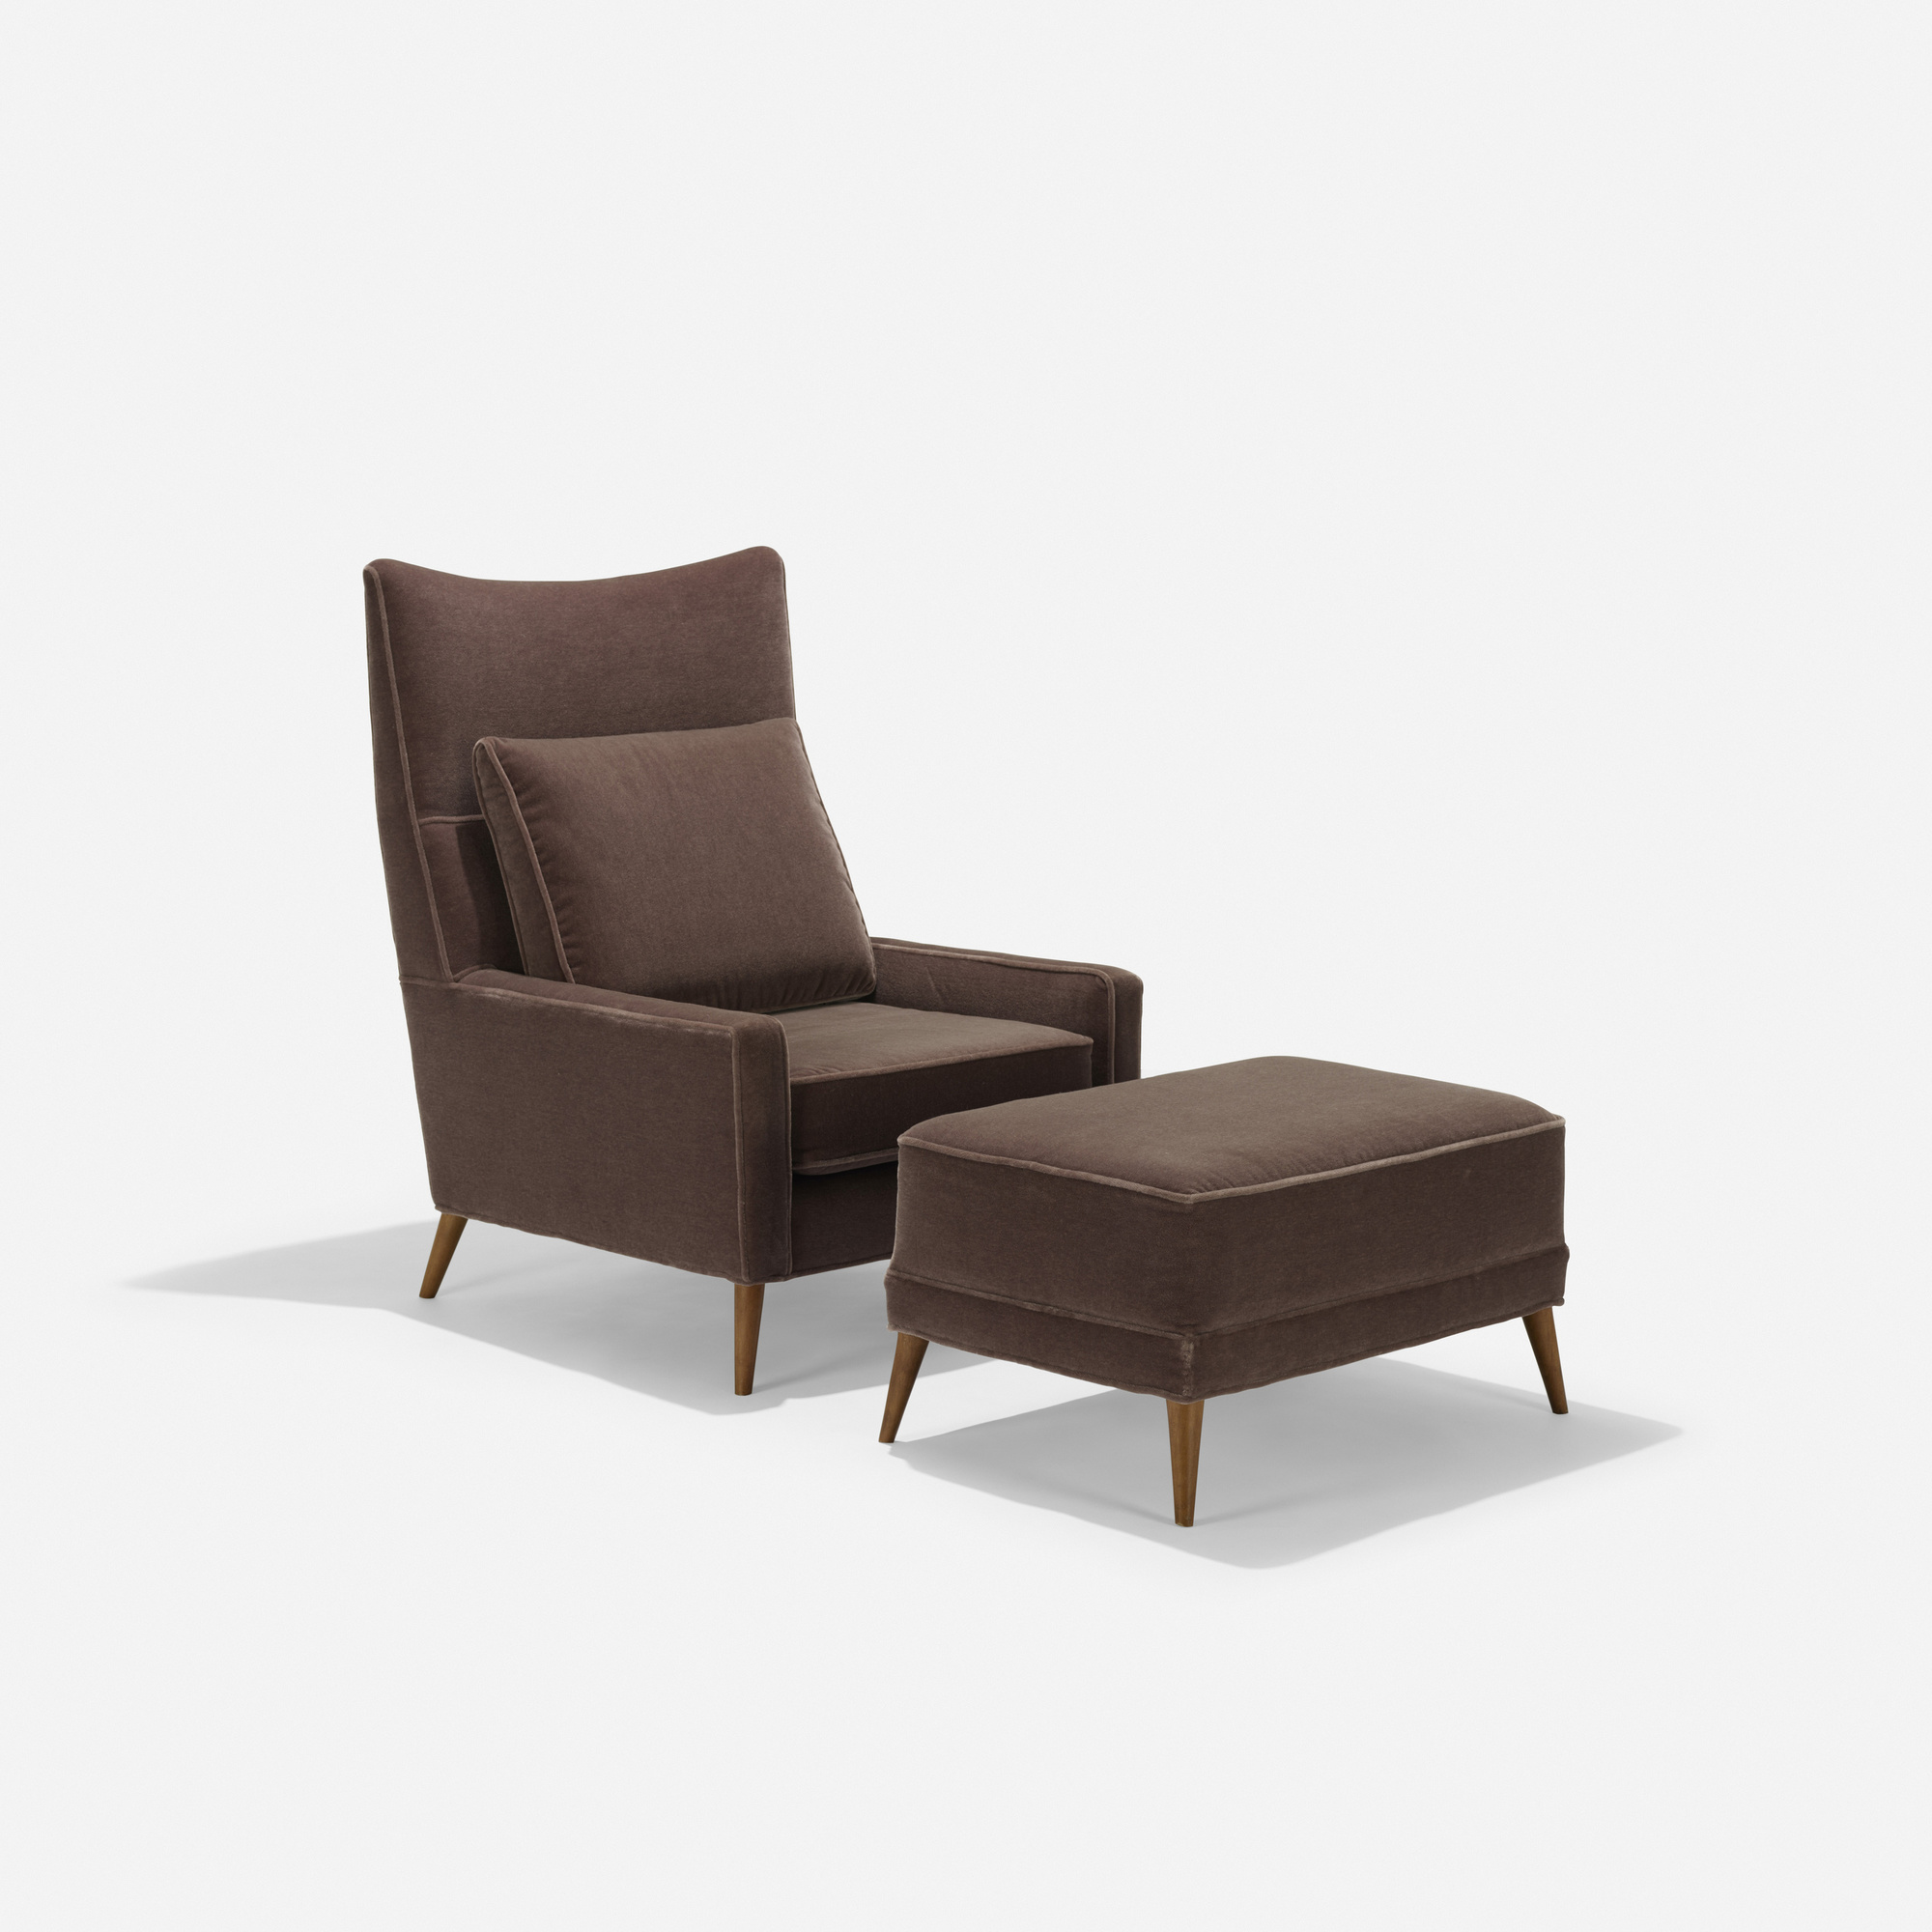 192: Paul McCobb / lounge chair and ottoman, model 314 (1 of 2)